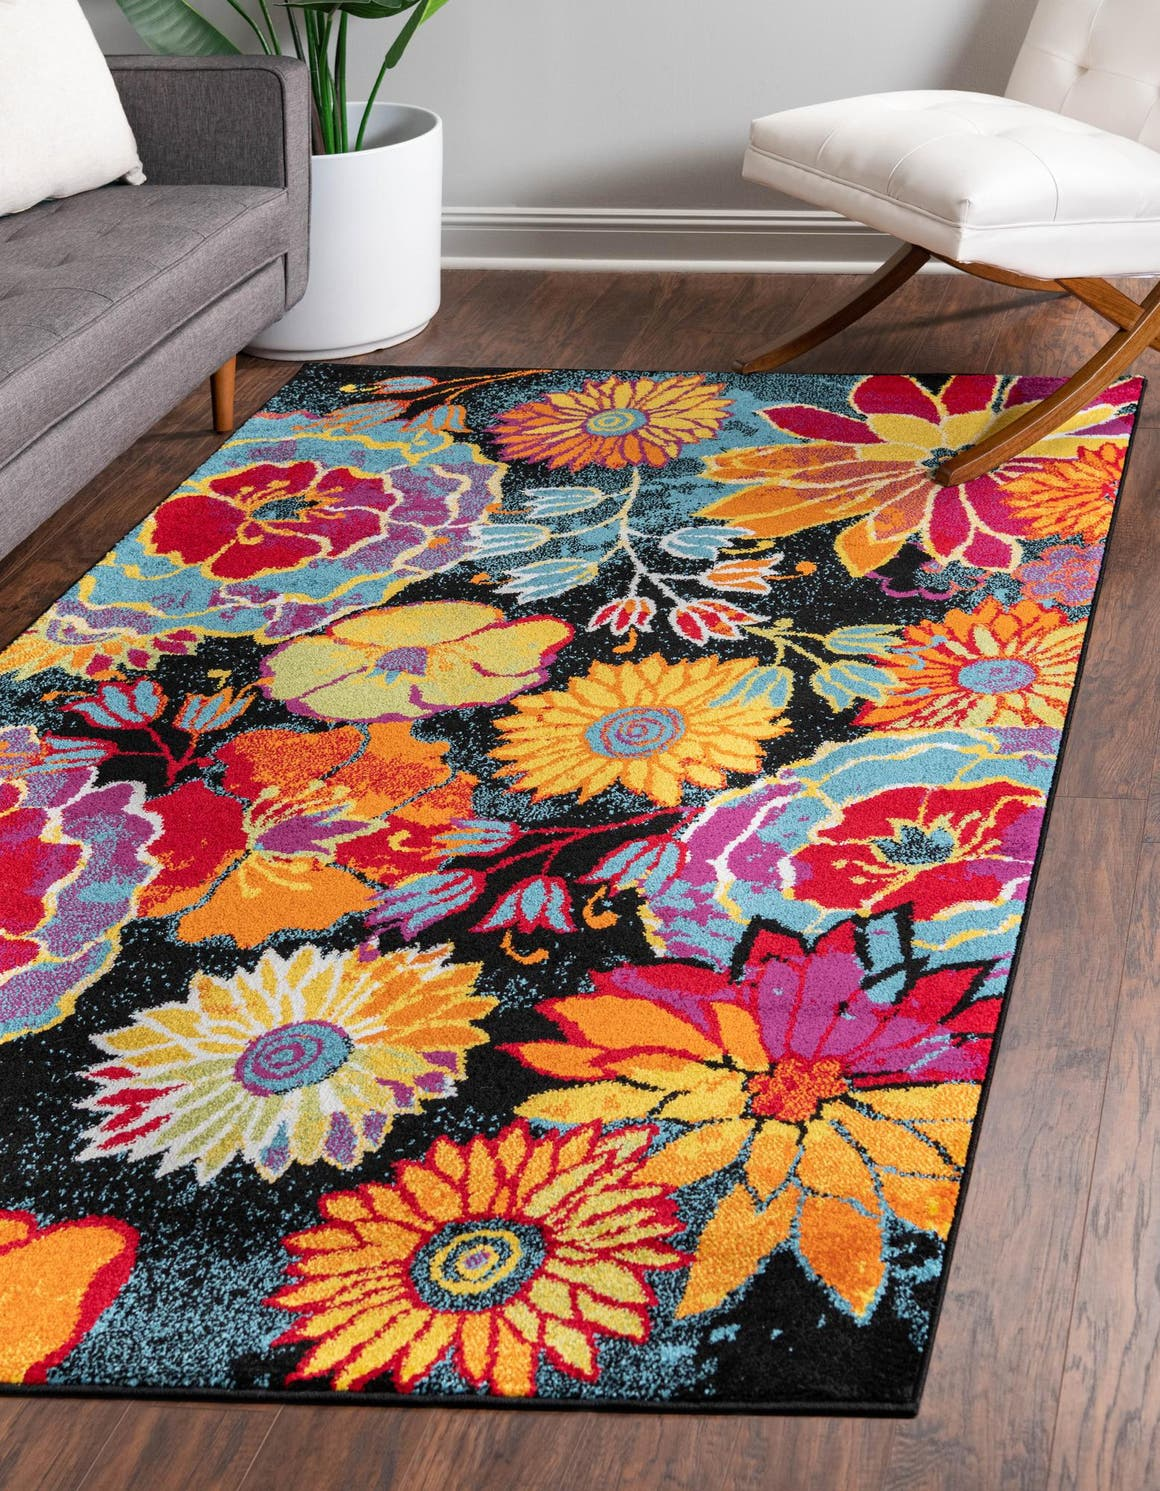 152cm x 245cm Florence Rug main image